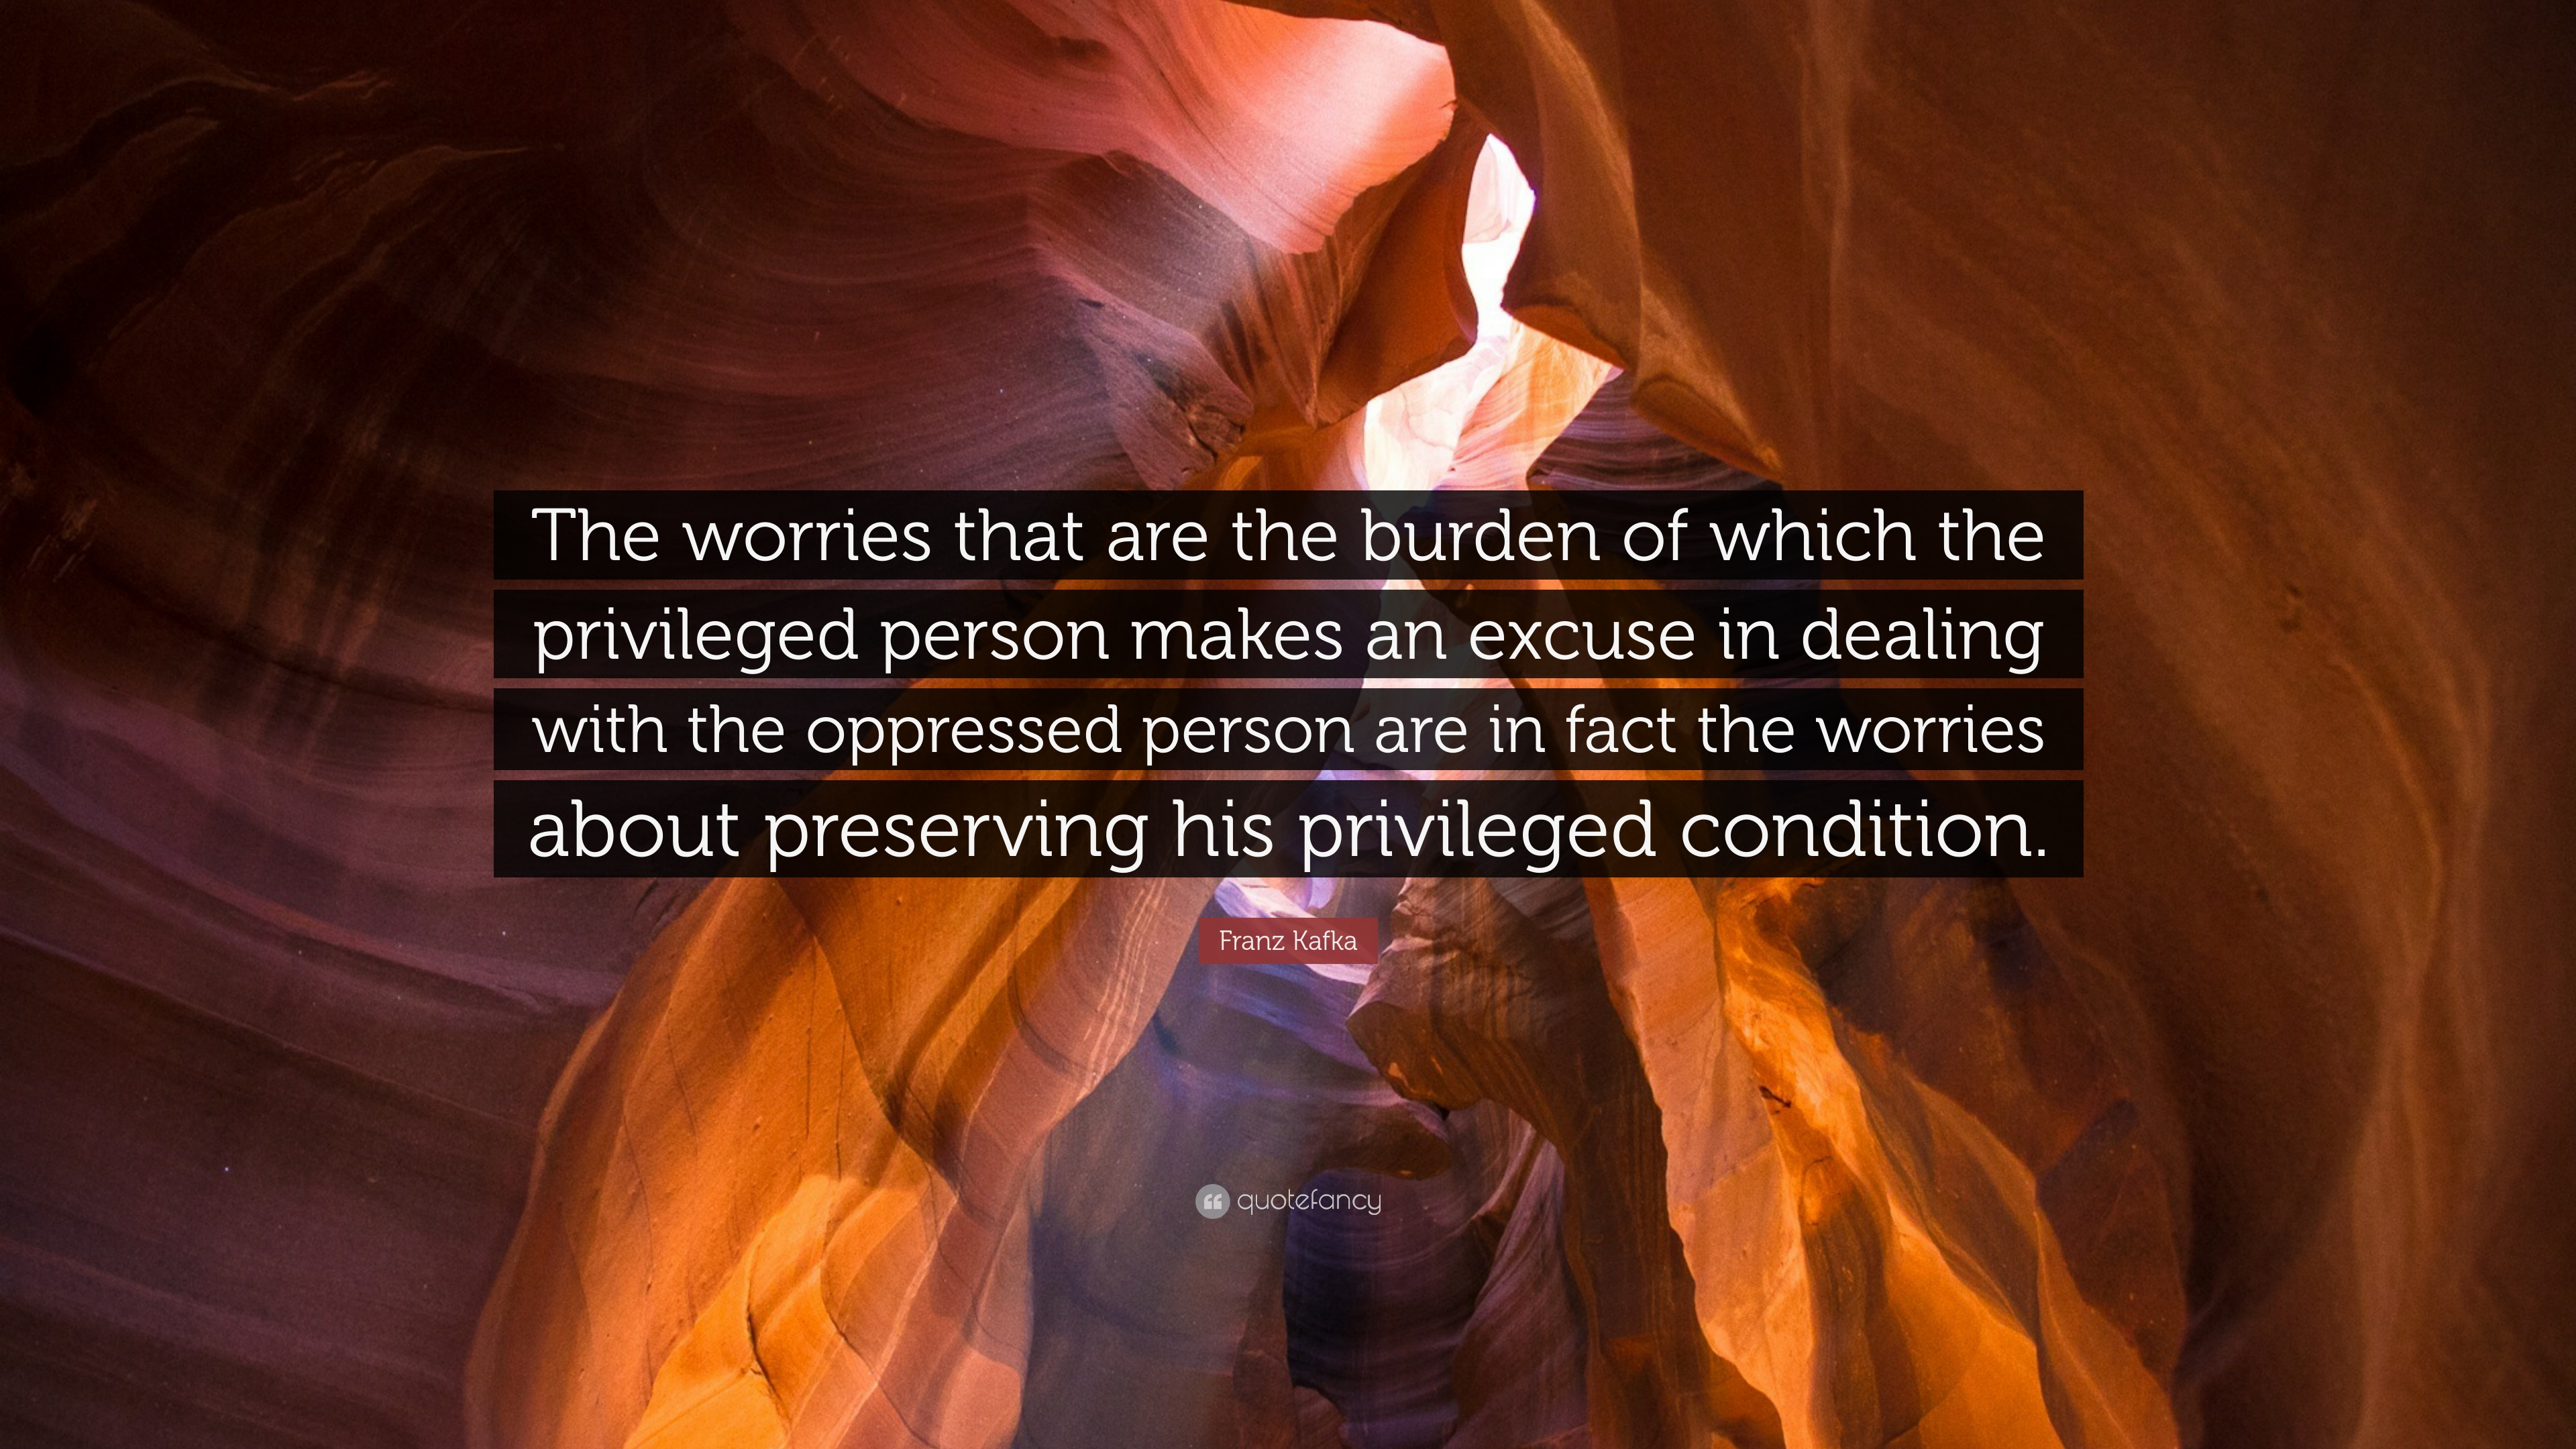 What should be a persons posture while living in oppression?